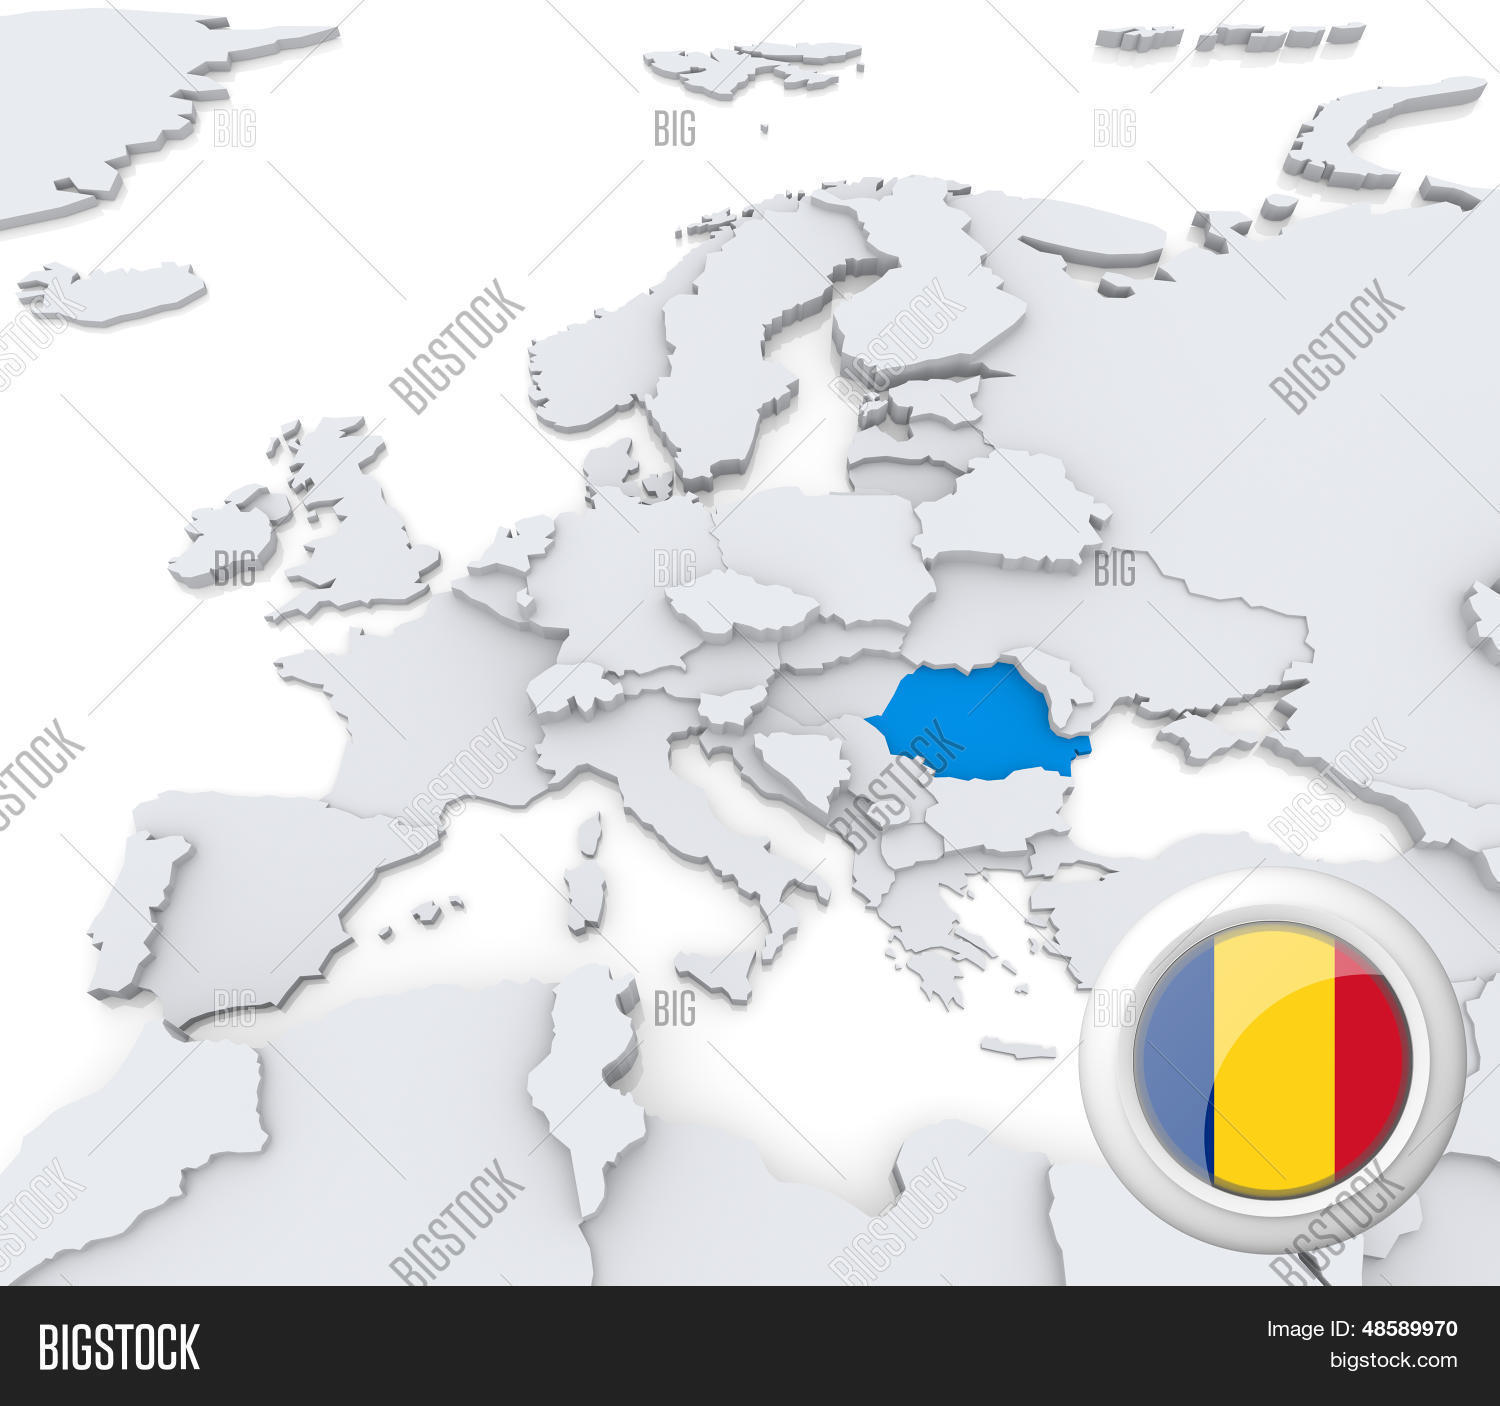 Romania On Map Europe Image & Photo (Free Trial) | Bigstock